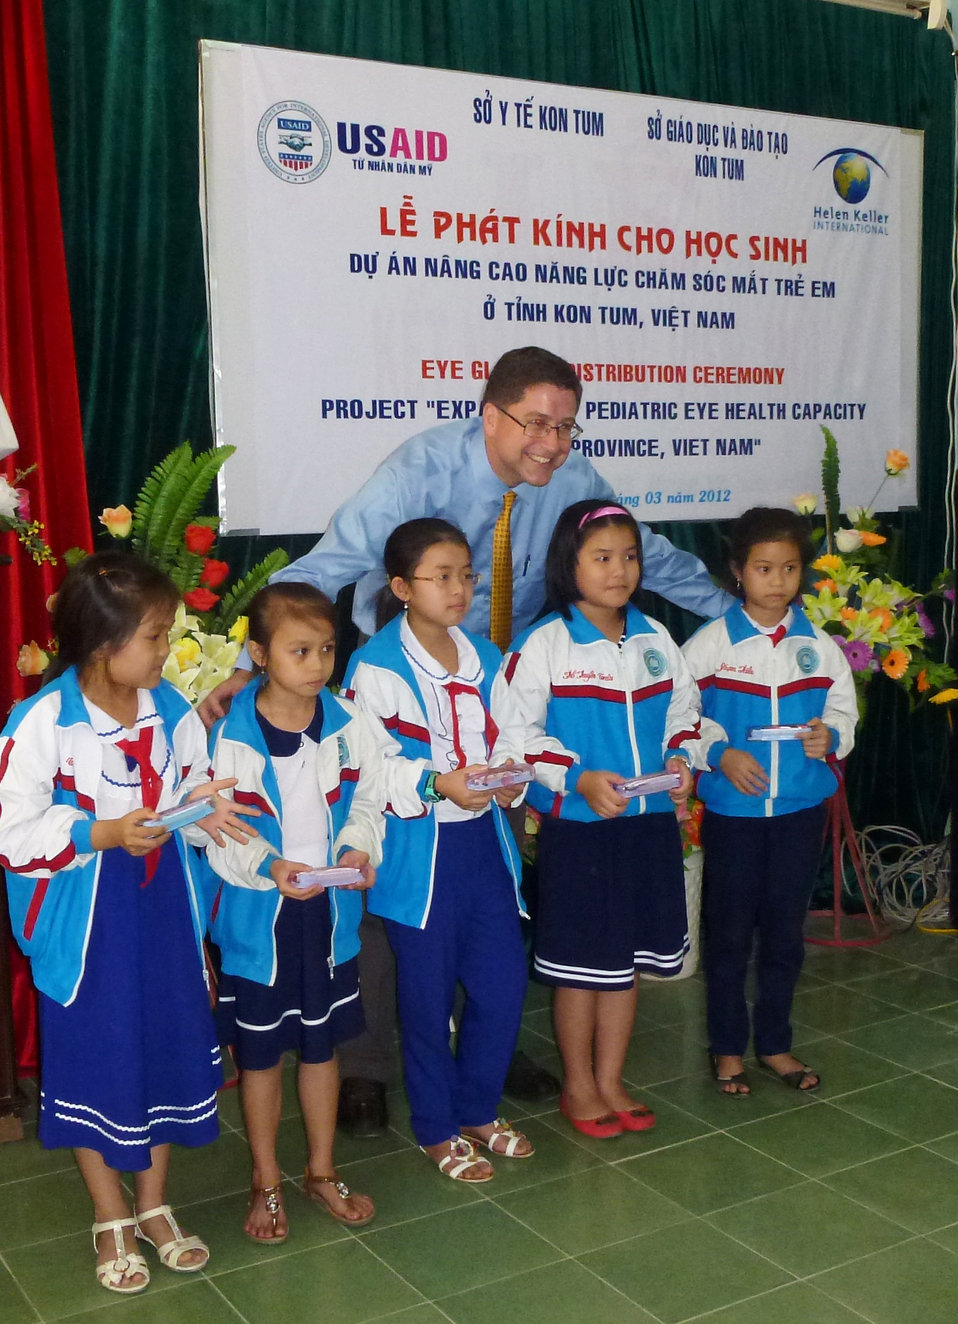 USAID and HKI support refractive error screening examination for students at Phan Dinh Phung Primary School in Kon Tum.